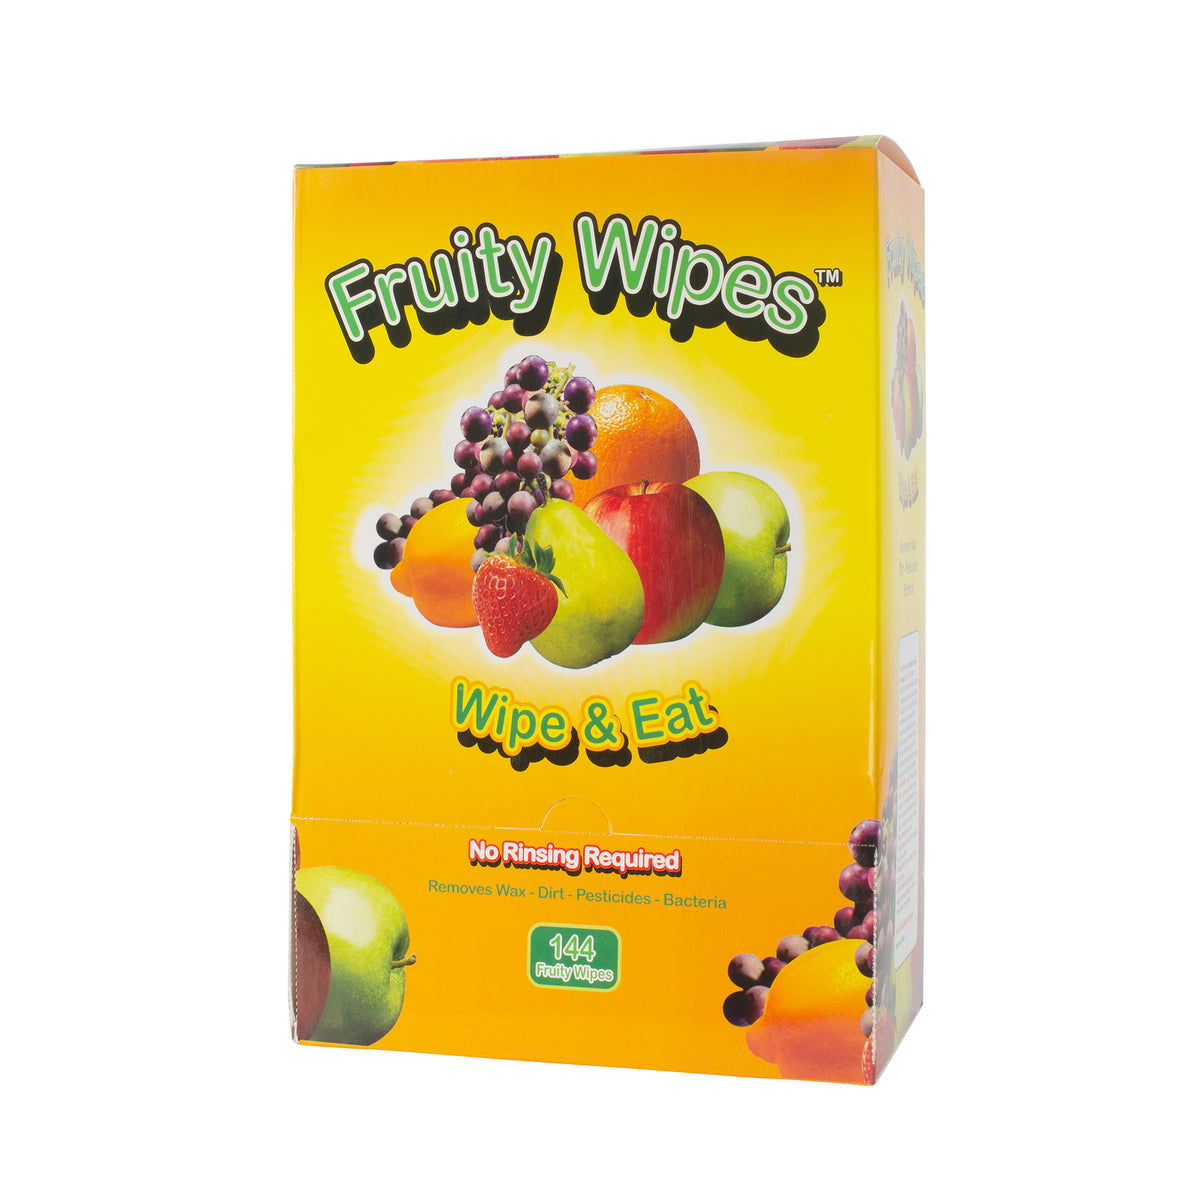 Fruity Wipes 144 Count Box of All Natural Individually Wrapped Wipes to clean fruits and vegetables.